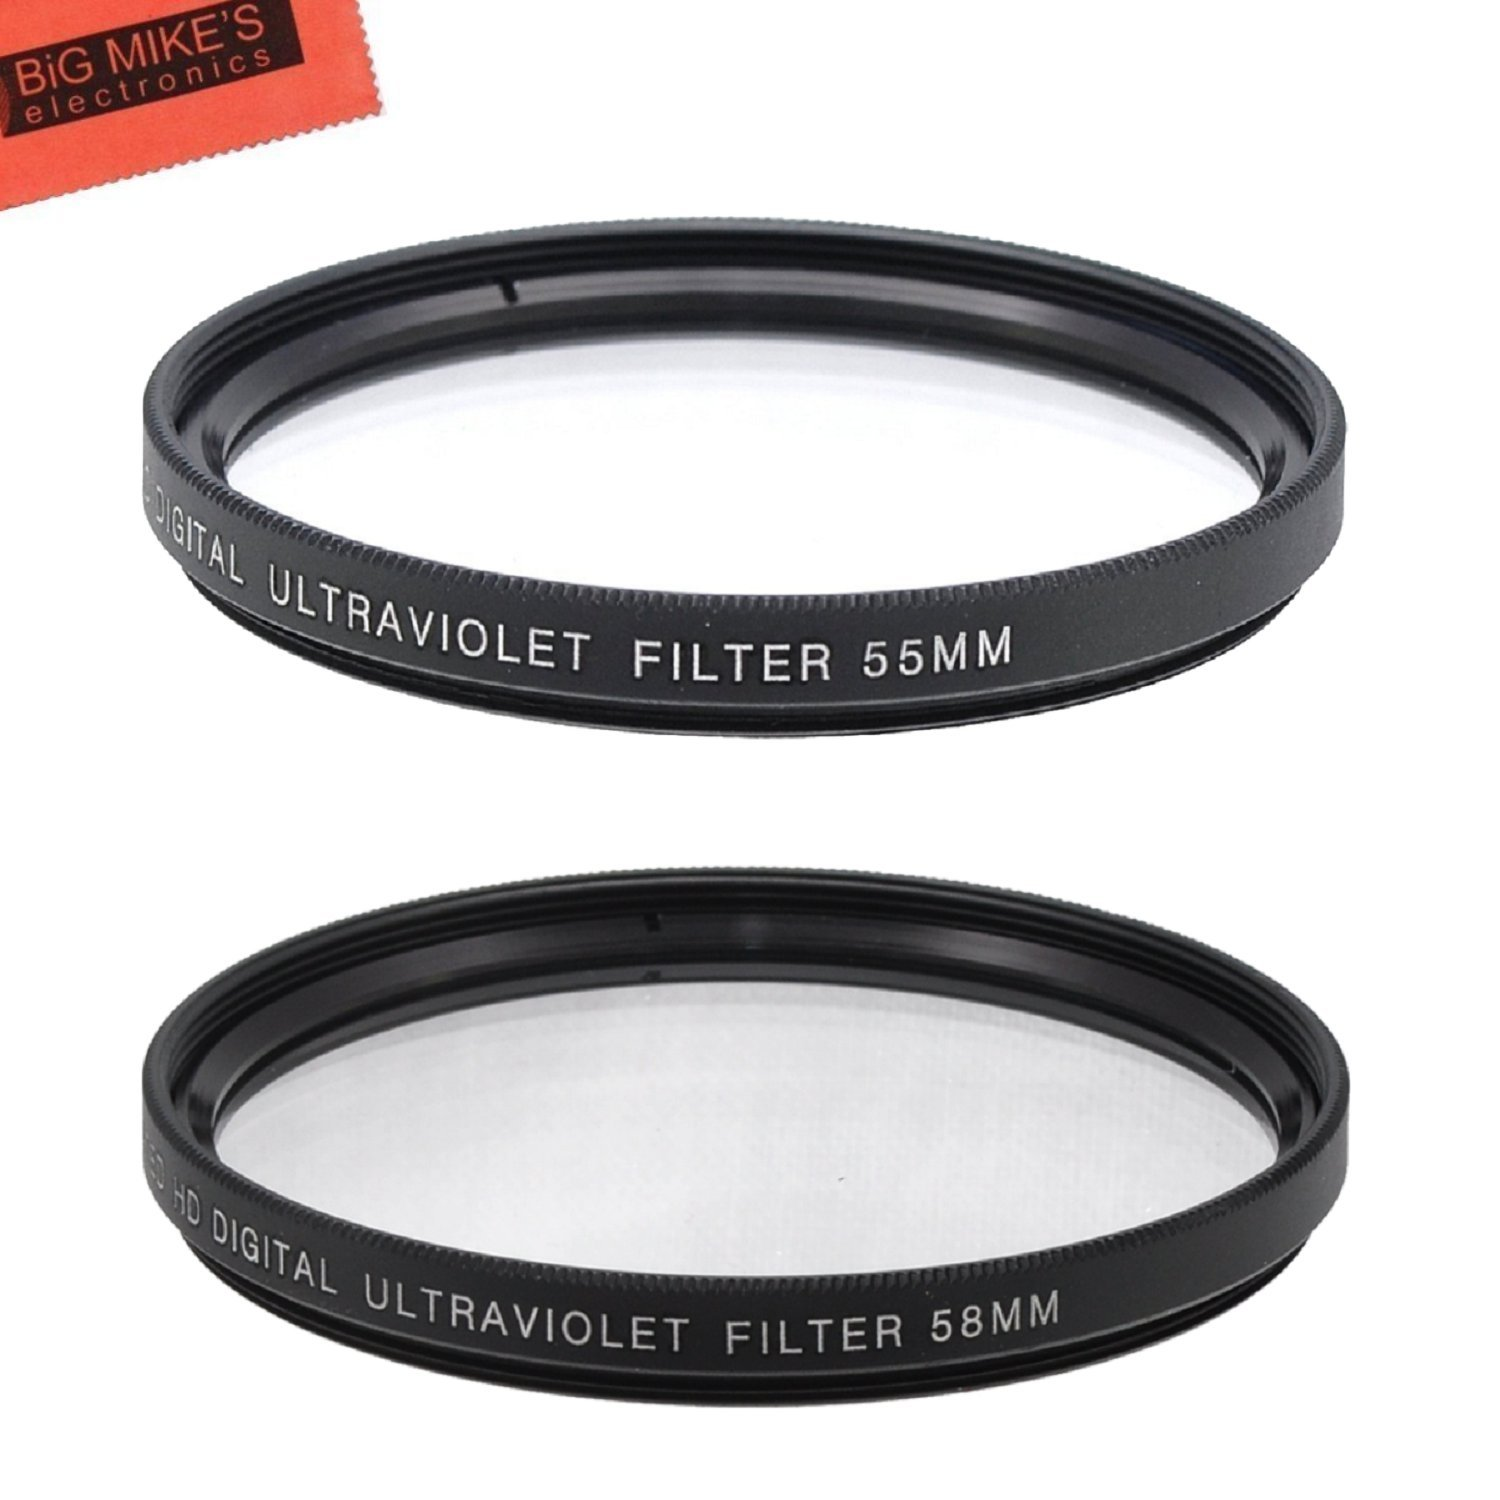 Best Rated In Camera Lens Sky And Uv Filters Helpful Customer Filter Hoya 58mm Pro 1 55mm Multi Coated Protective For Nikon D5600 D3400 Dslr